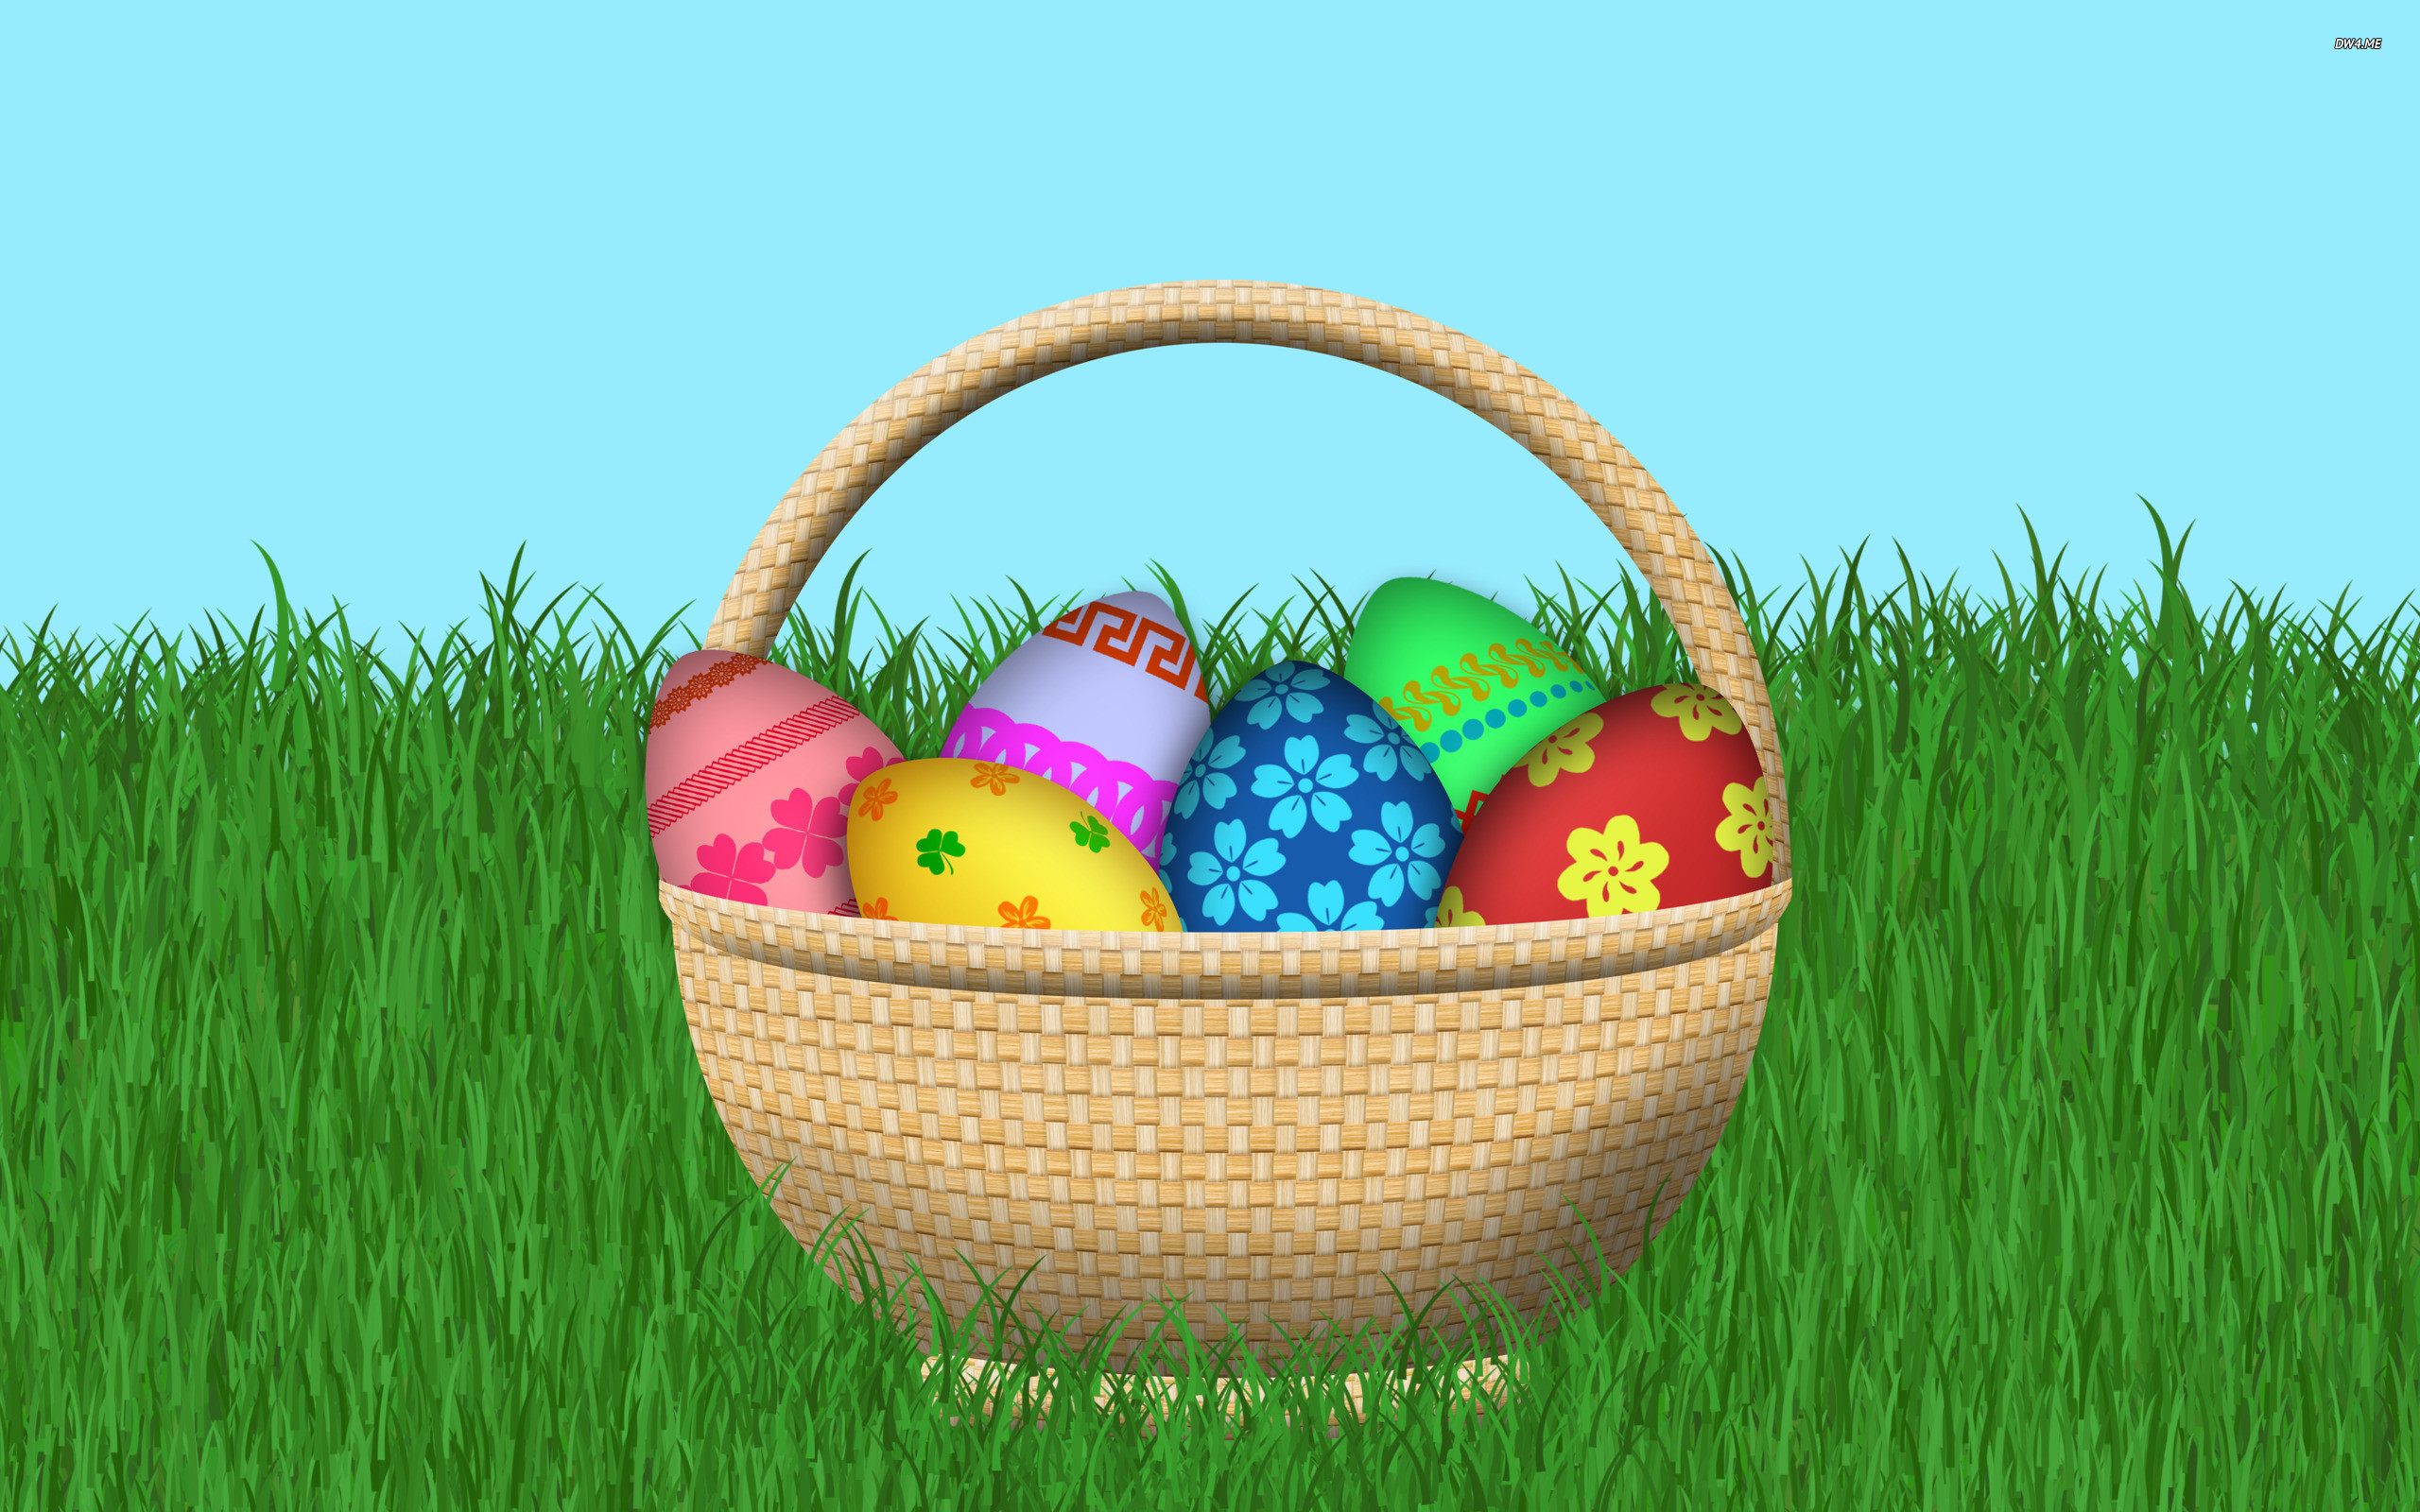 2560x1600 My Fanpop Friends and I images Easter Egg Basket HD wallpaper and  background photos